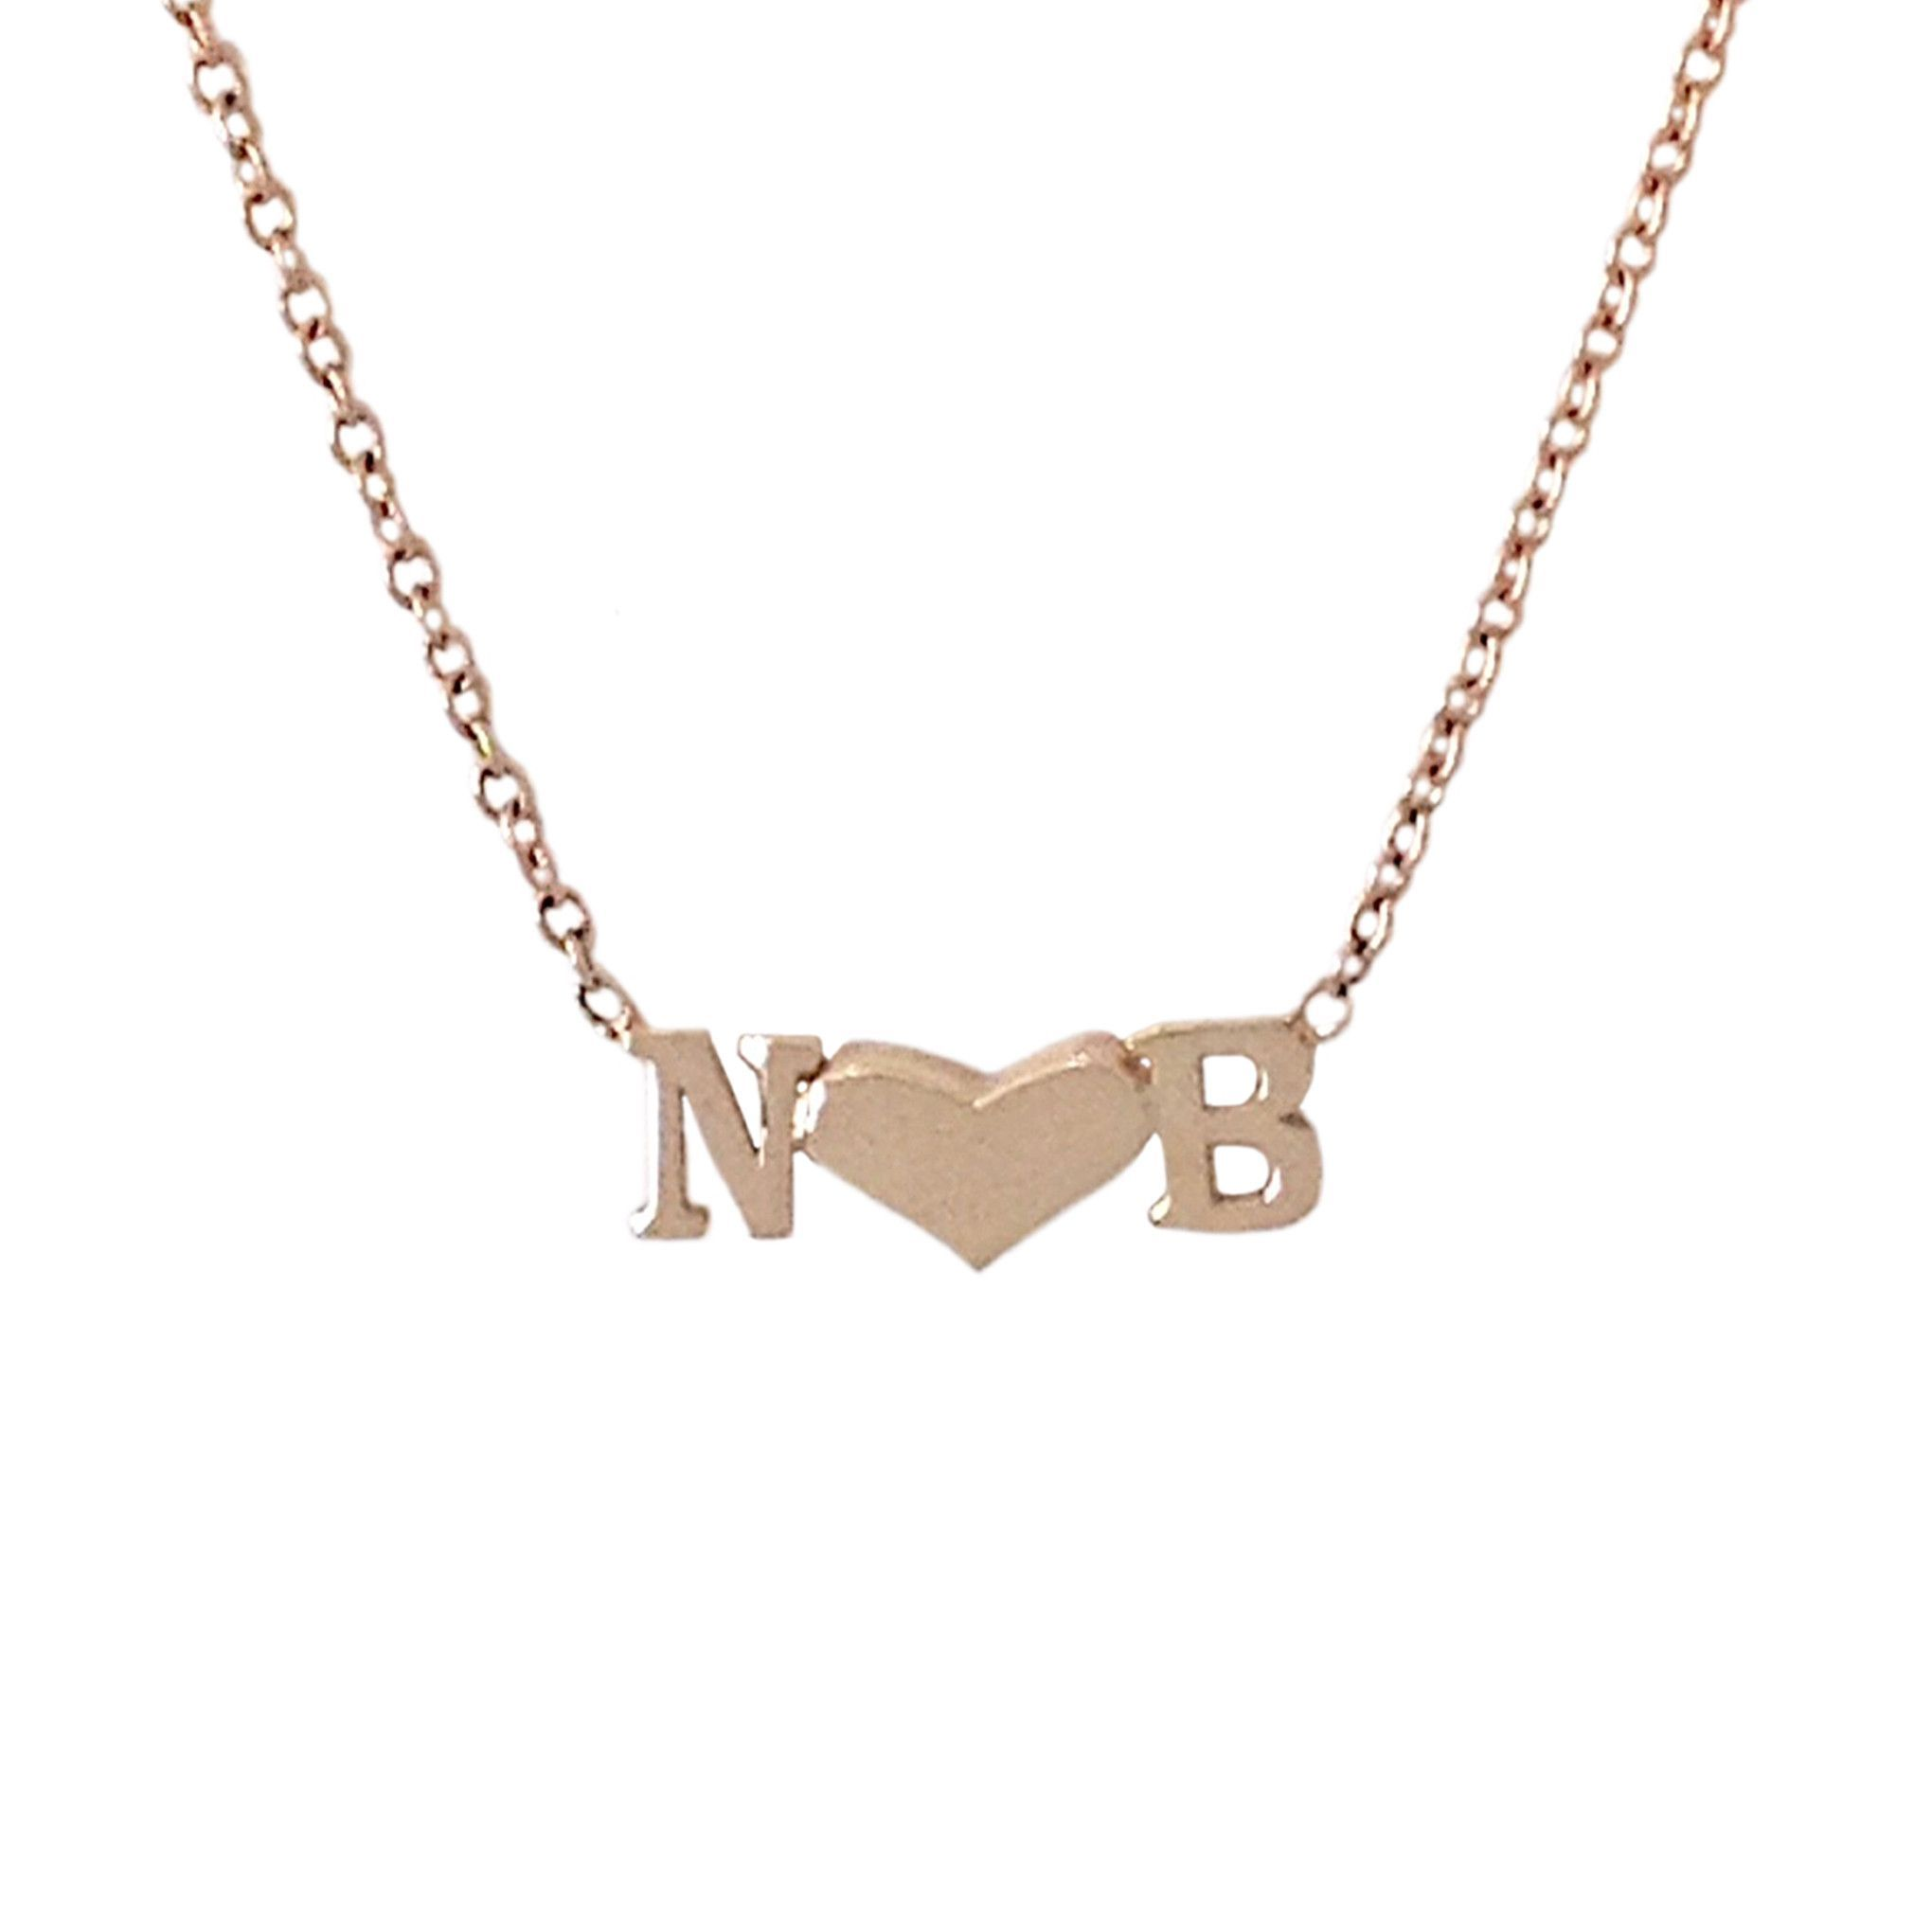 14k gold double initial sweetheart charm pendant necklace 14k gold double initial sweetheart charm pendant necklace mozeypictures Images